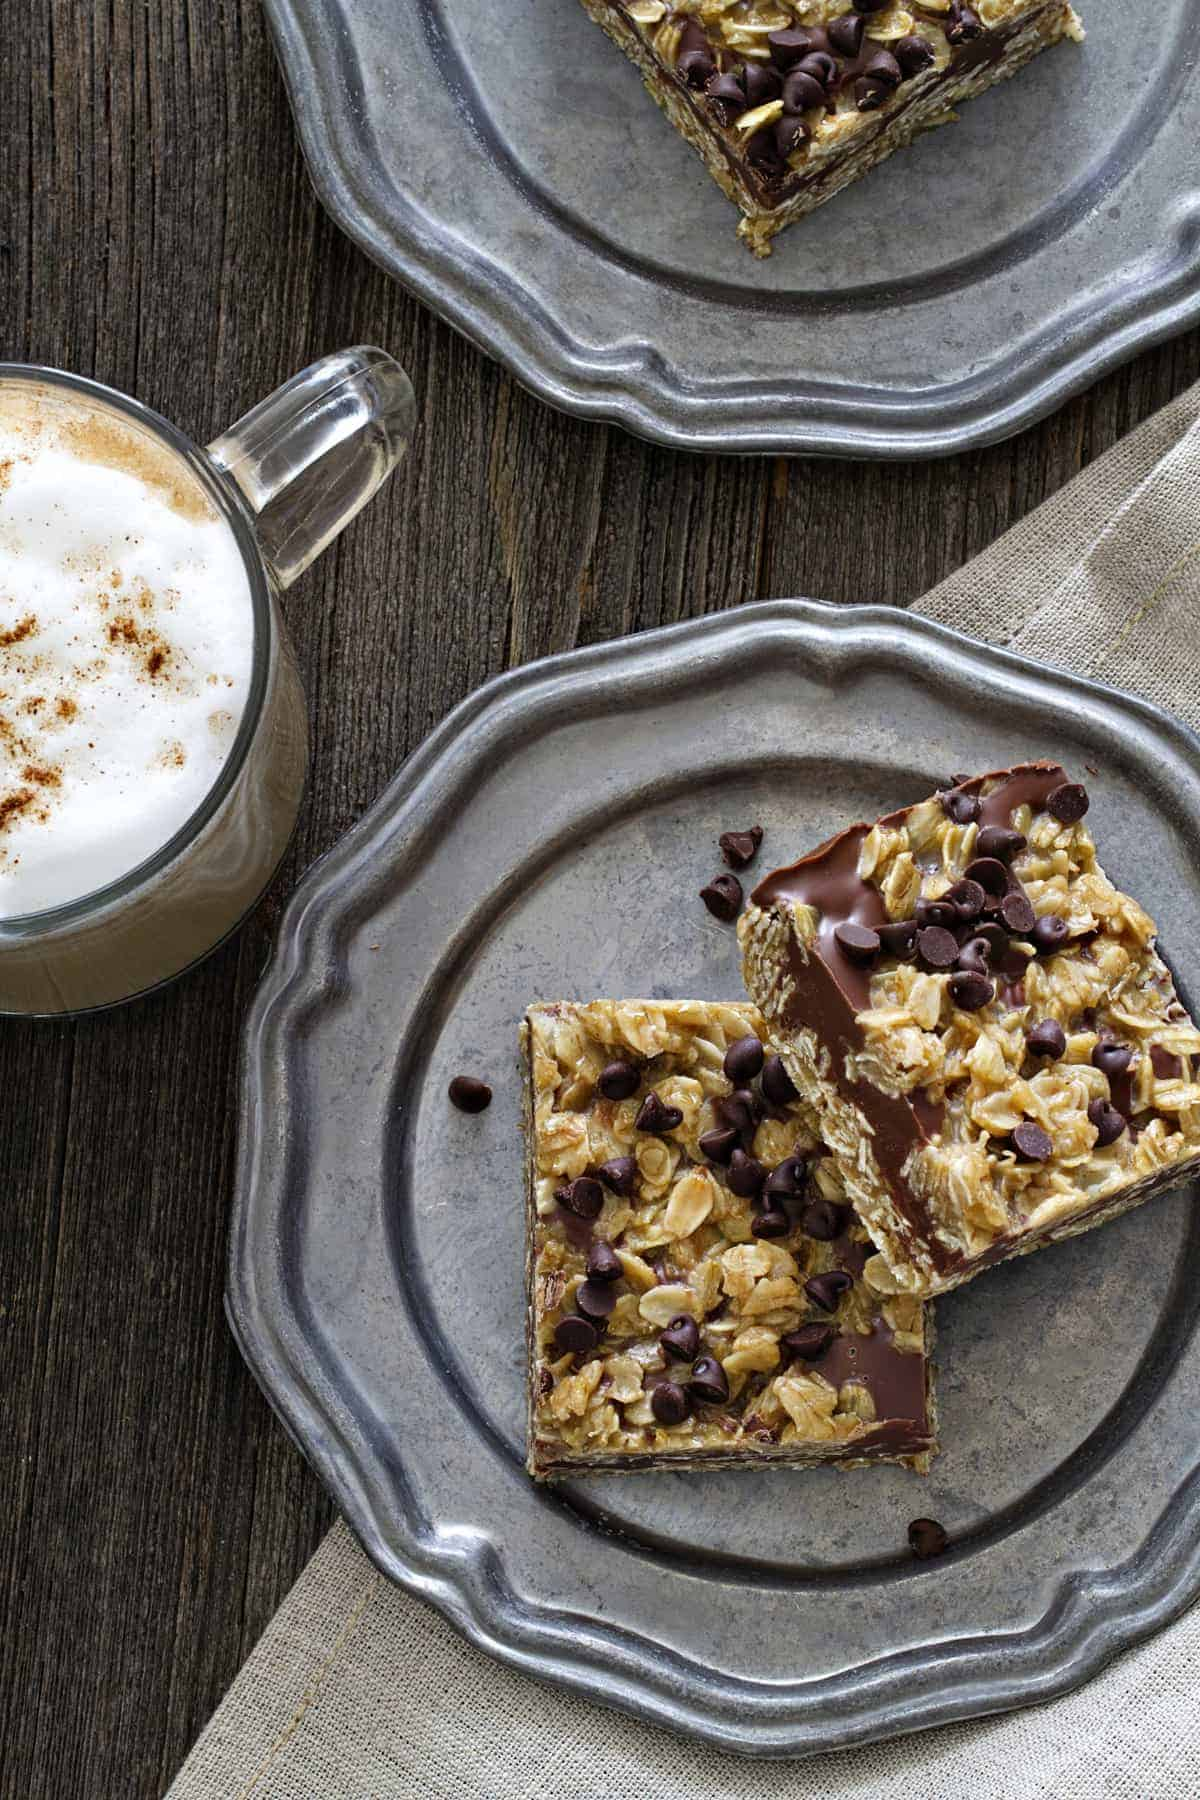 No Bake Chocolate Peanut Butter Oatmeal Bars are super easy. No baking required.